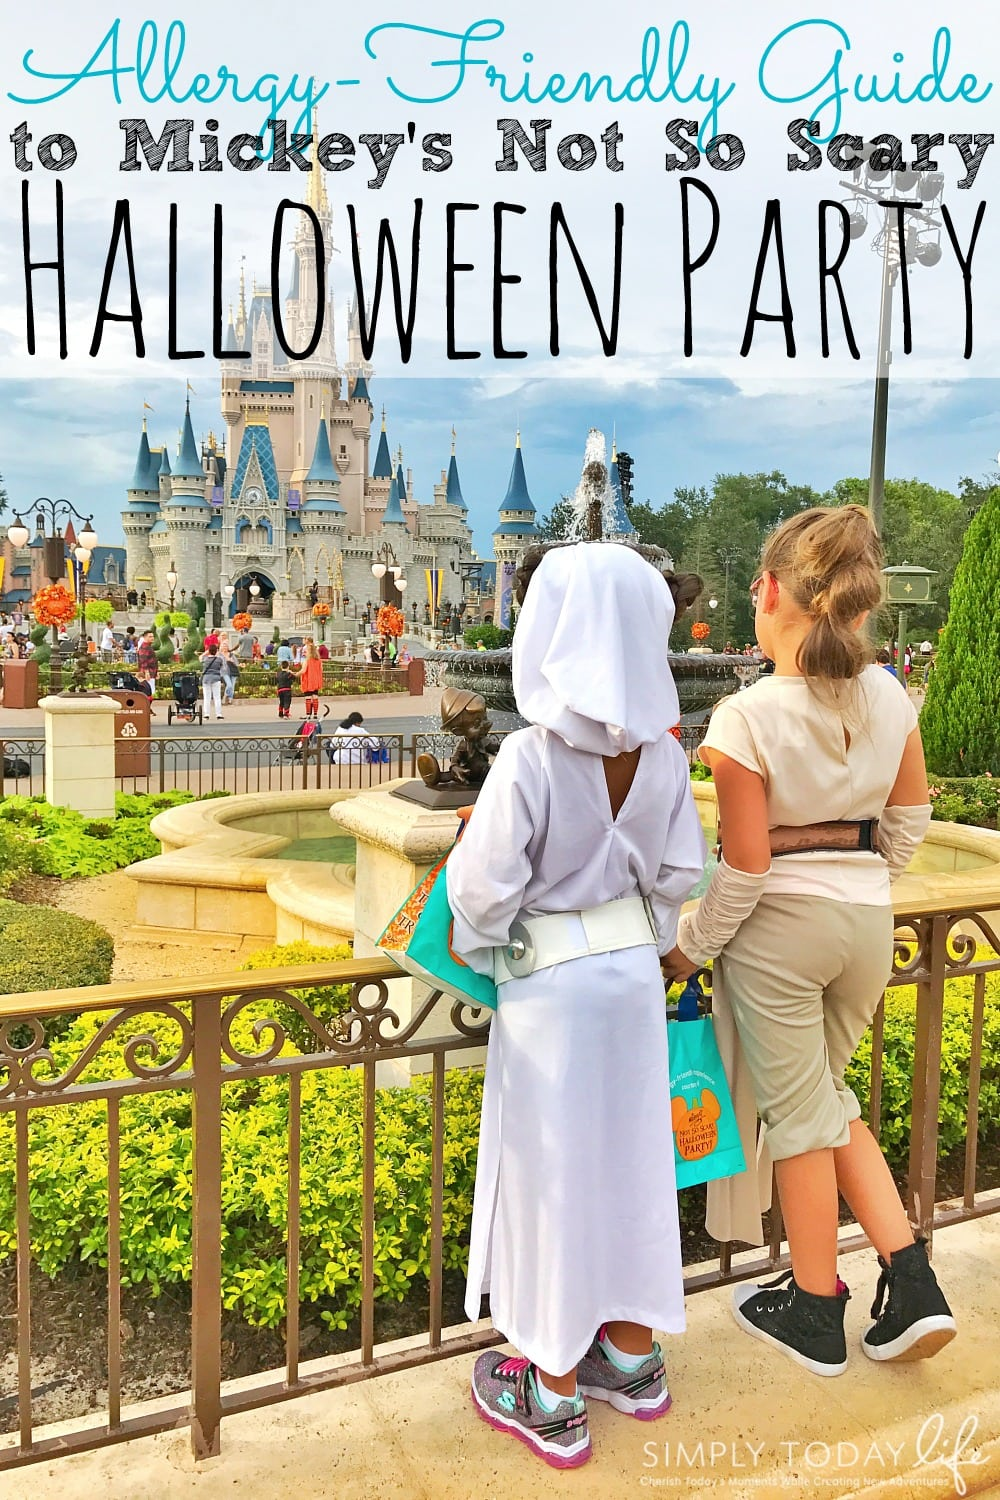 Allergy Friendly Guide To Mickey's Not So Scary Halloween Party - simplytodaylife.com